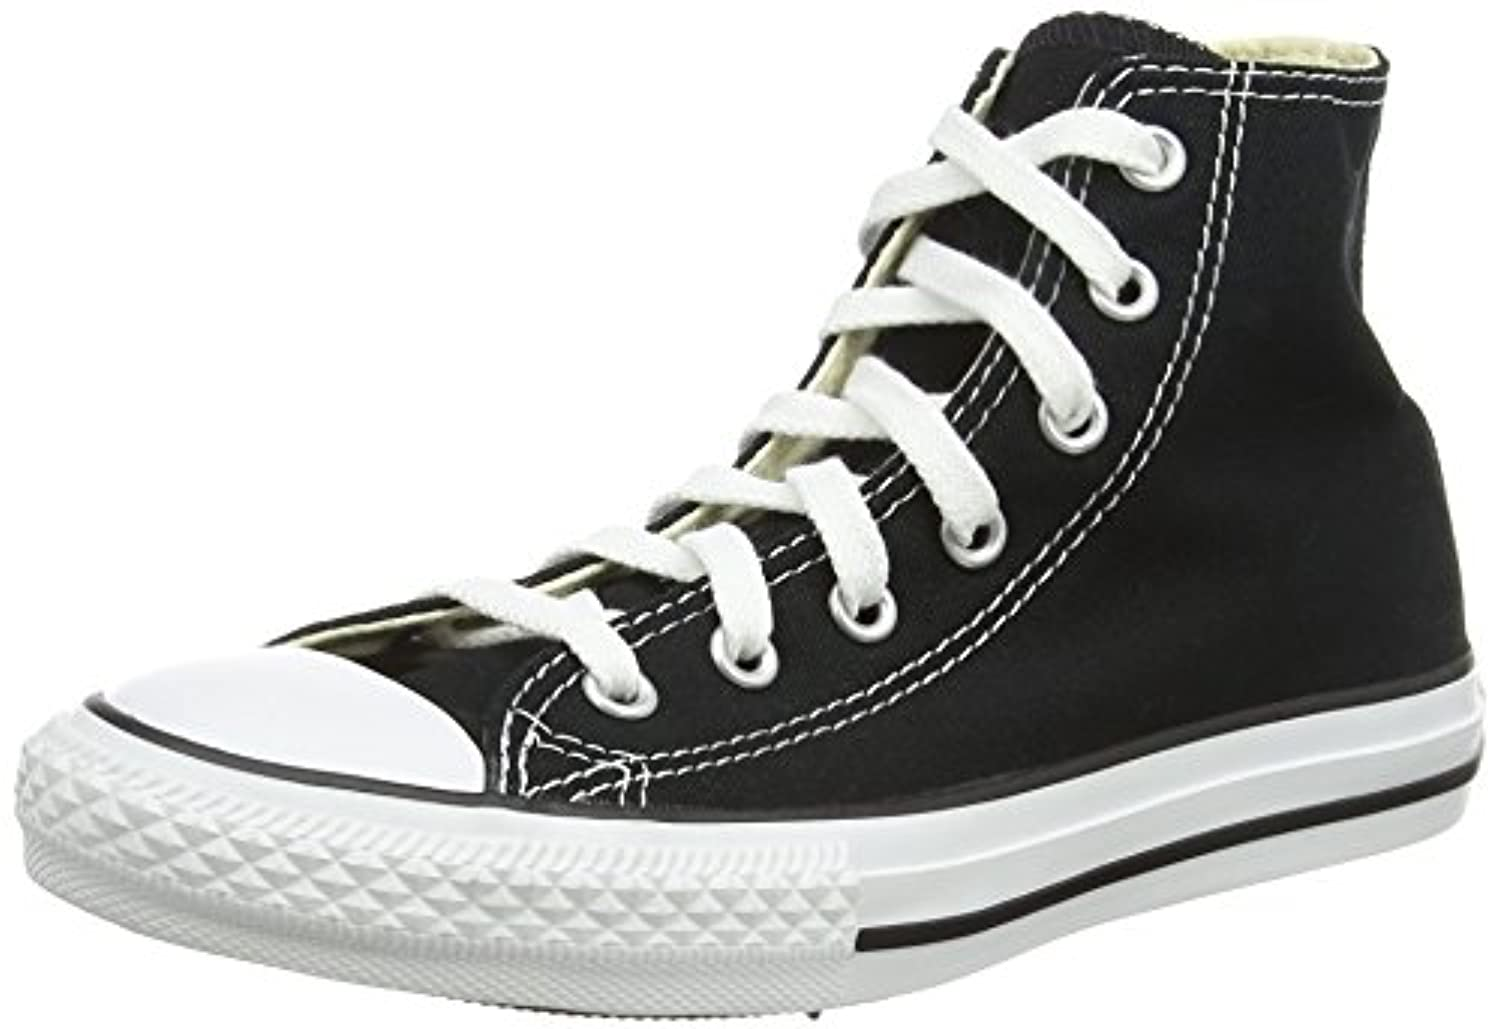 Converse Chuck Taylor All Star Hi , Unisex Kids' Trainers, Charcoal, 4 Child UK (20 EU)